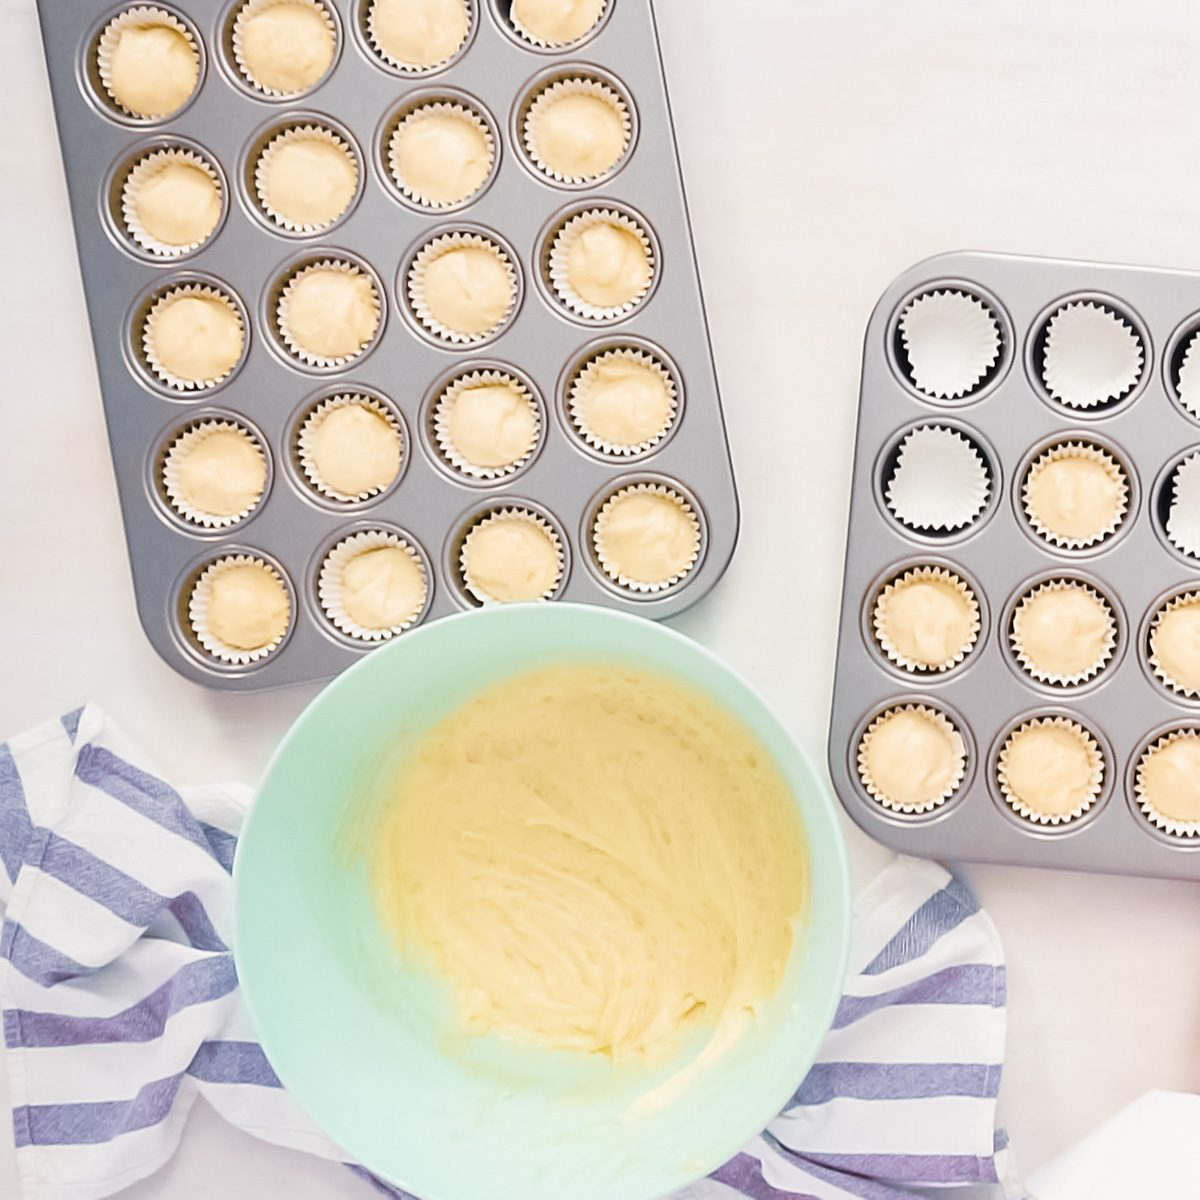 Flat lay. Scooping vanilla cupcake batter into cupcake liners.; Shutterstock ID 1235337202; Job (TFH, TOH, RD, BNB, CWM, CM): TOH